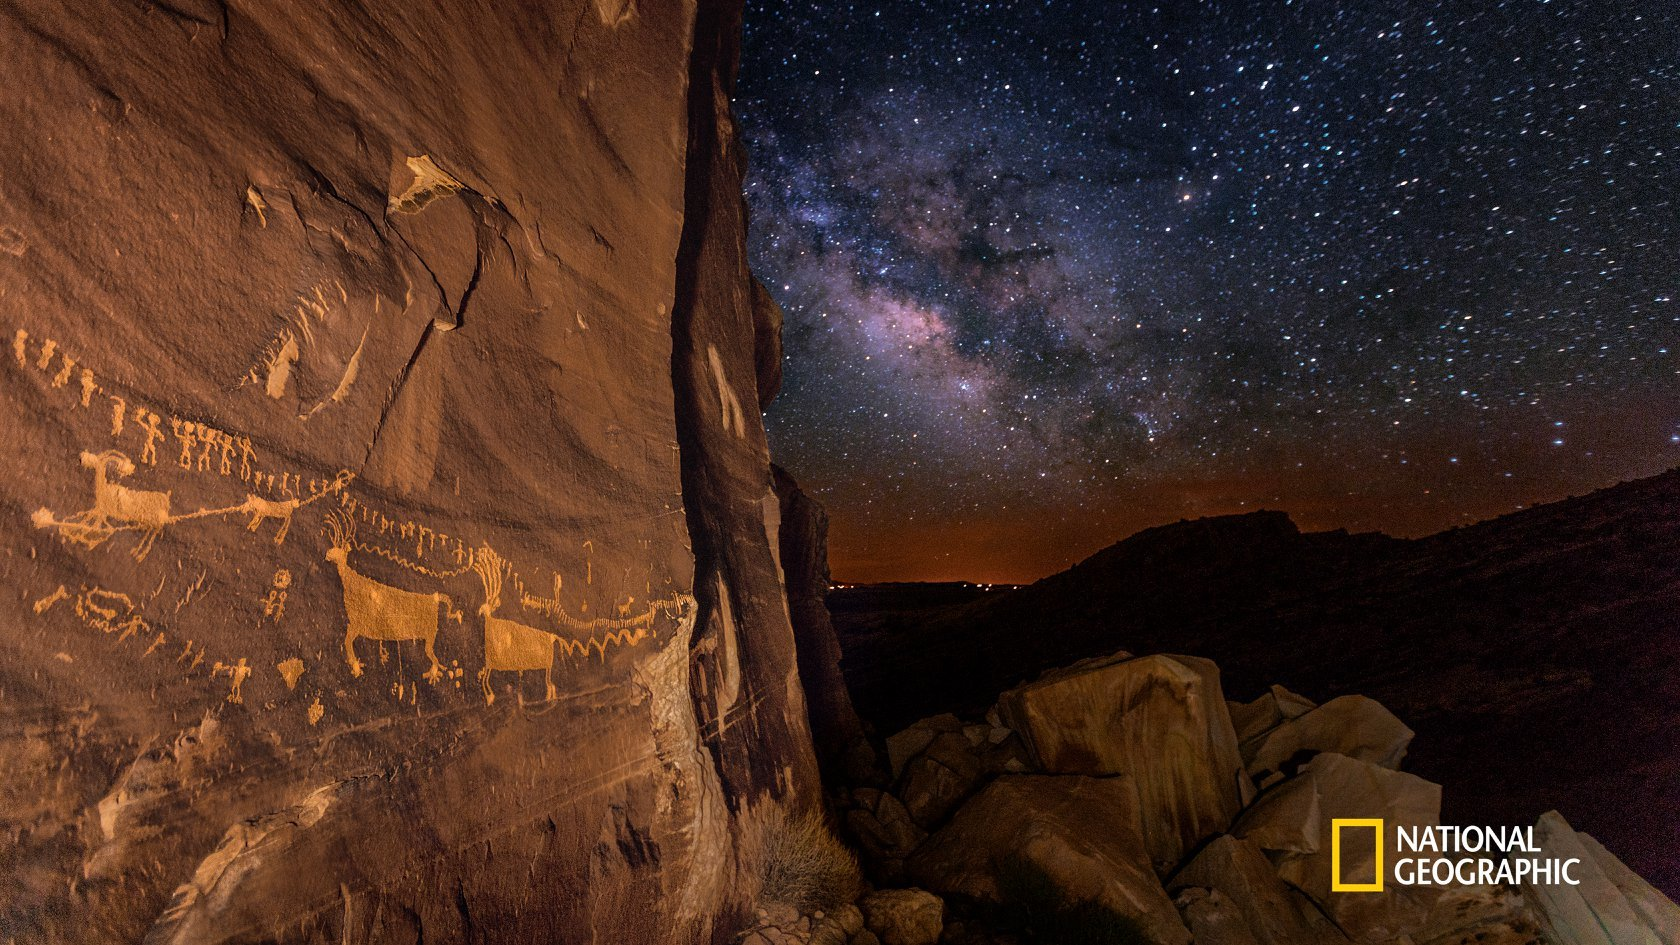 Ancient art and starry skies